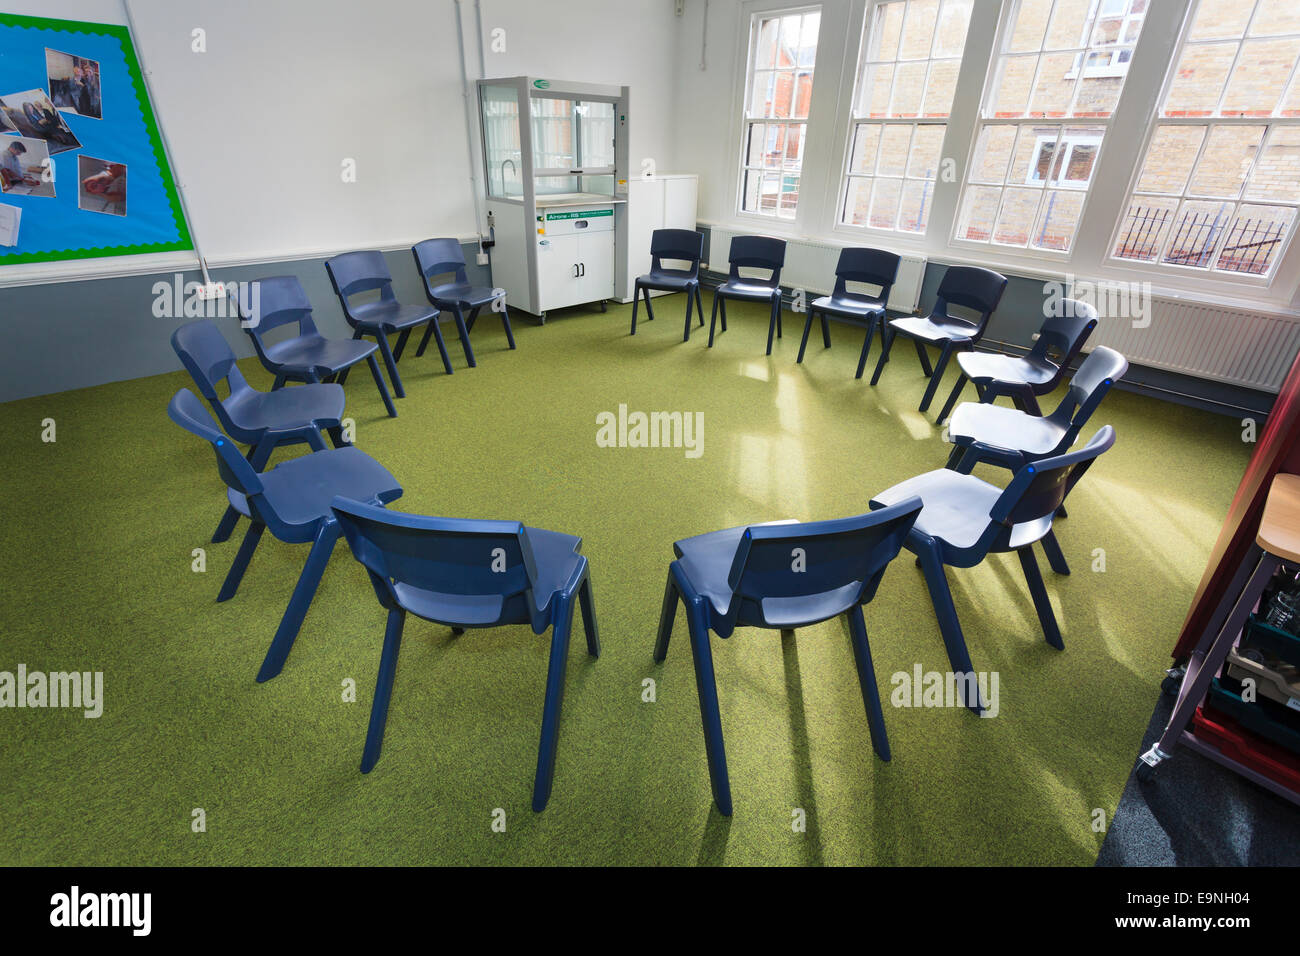 Chairs Arranged In A Circle Classroom At Isle Of Wight Studio School